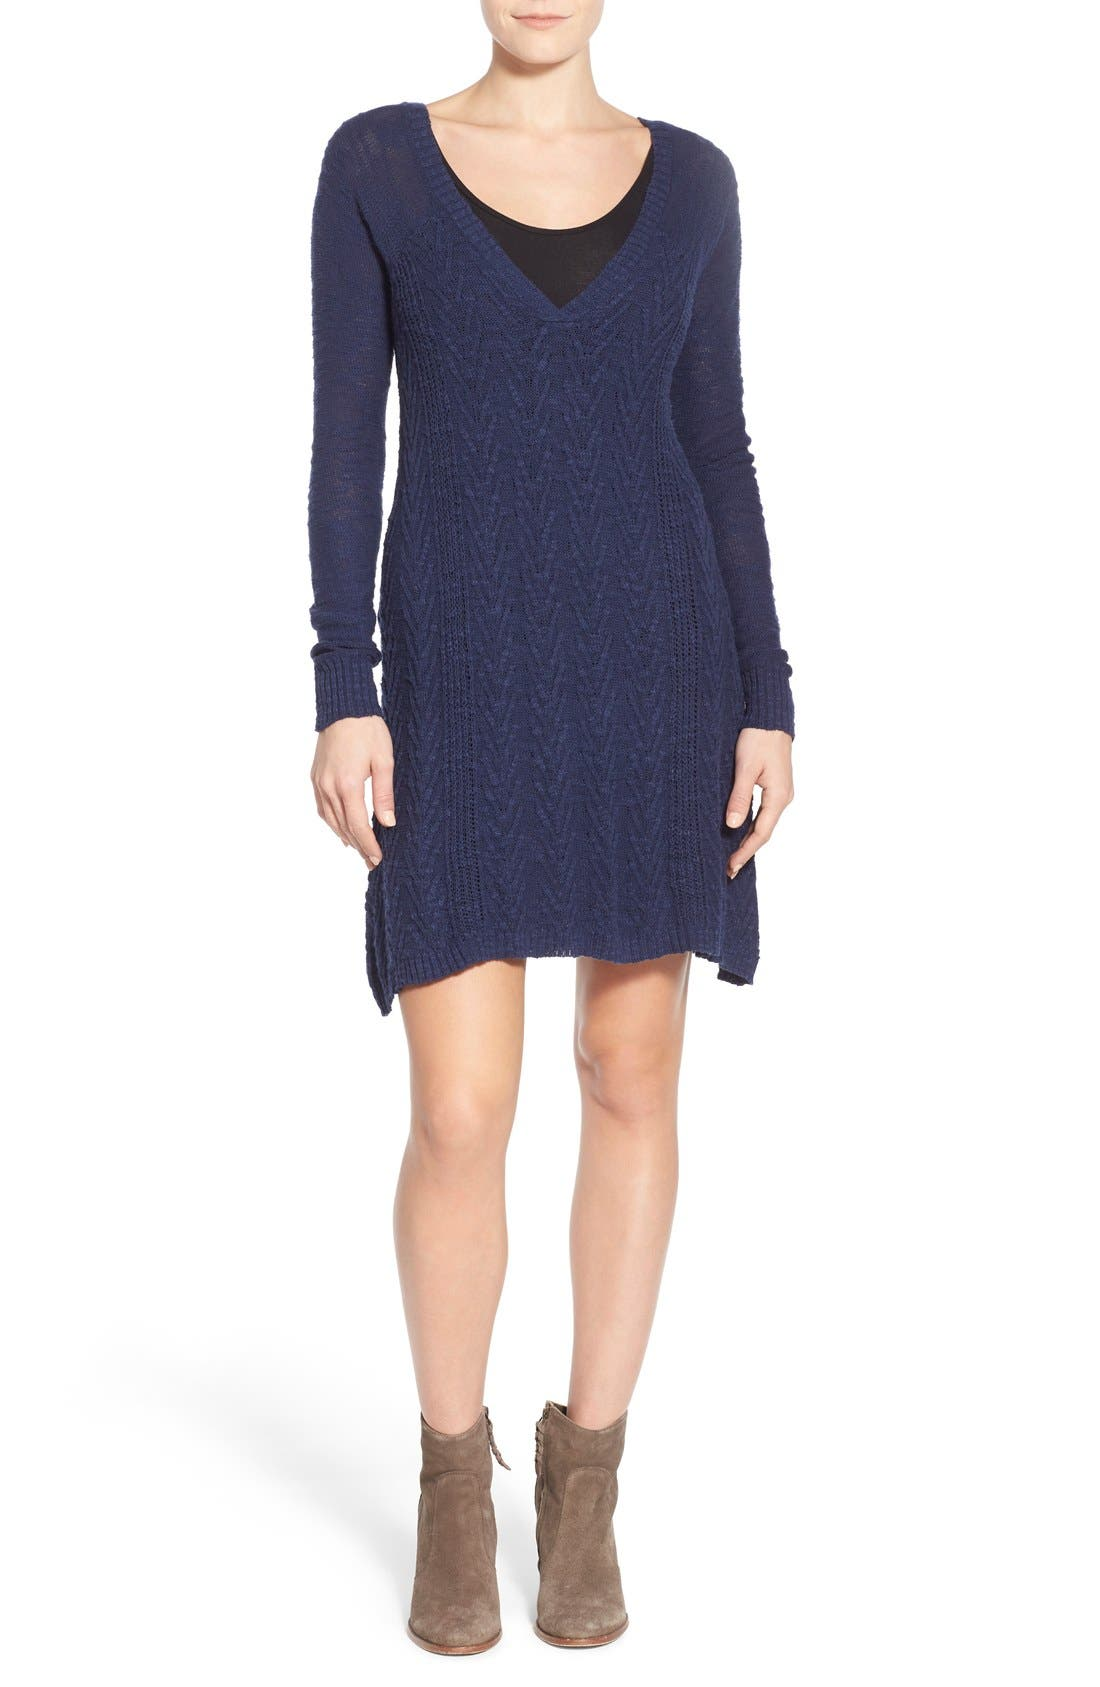 Alternate Image 1 Selected - LAmade V-Neck Cable Knit Sweater Dress